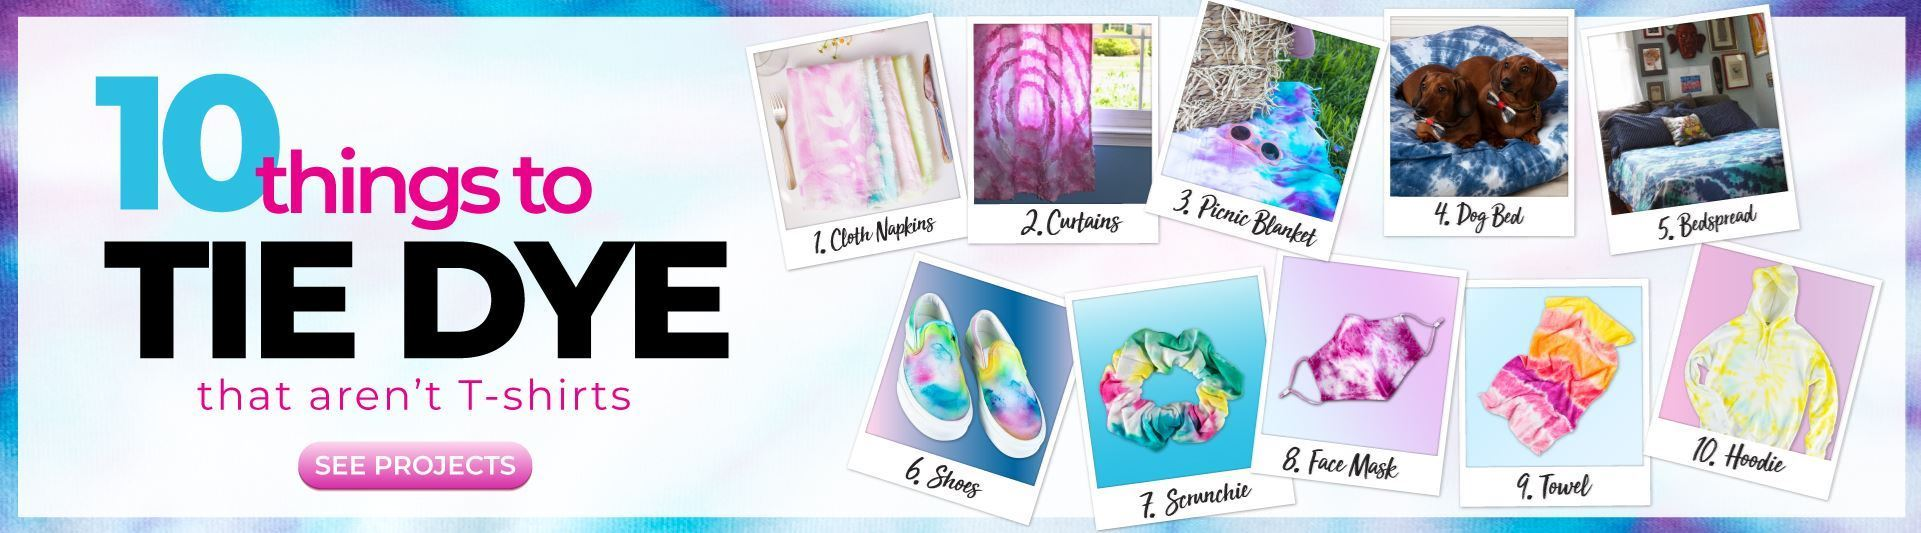 Image 10 Things to Tie Dye That Aren't T-shirts